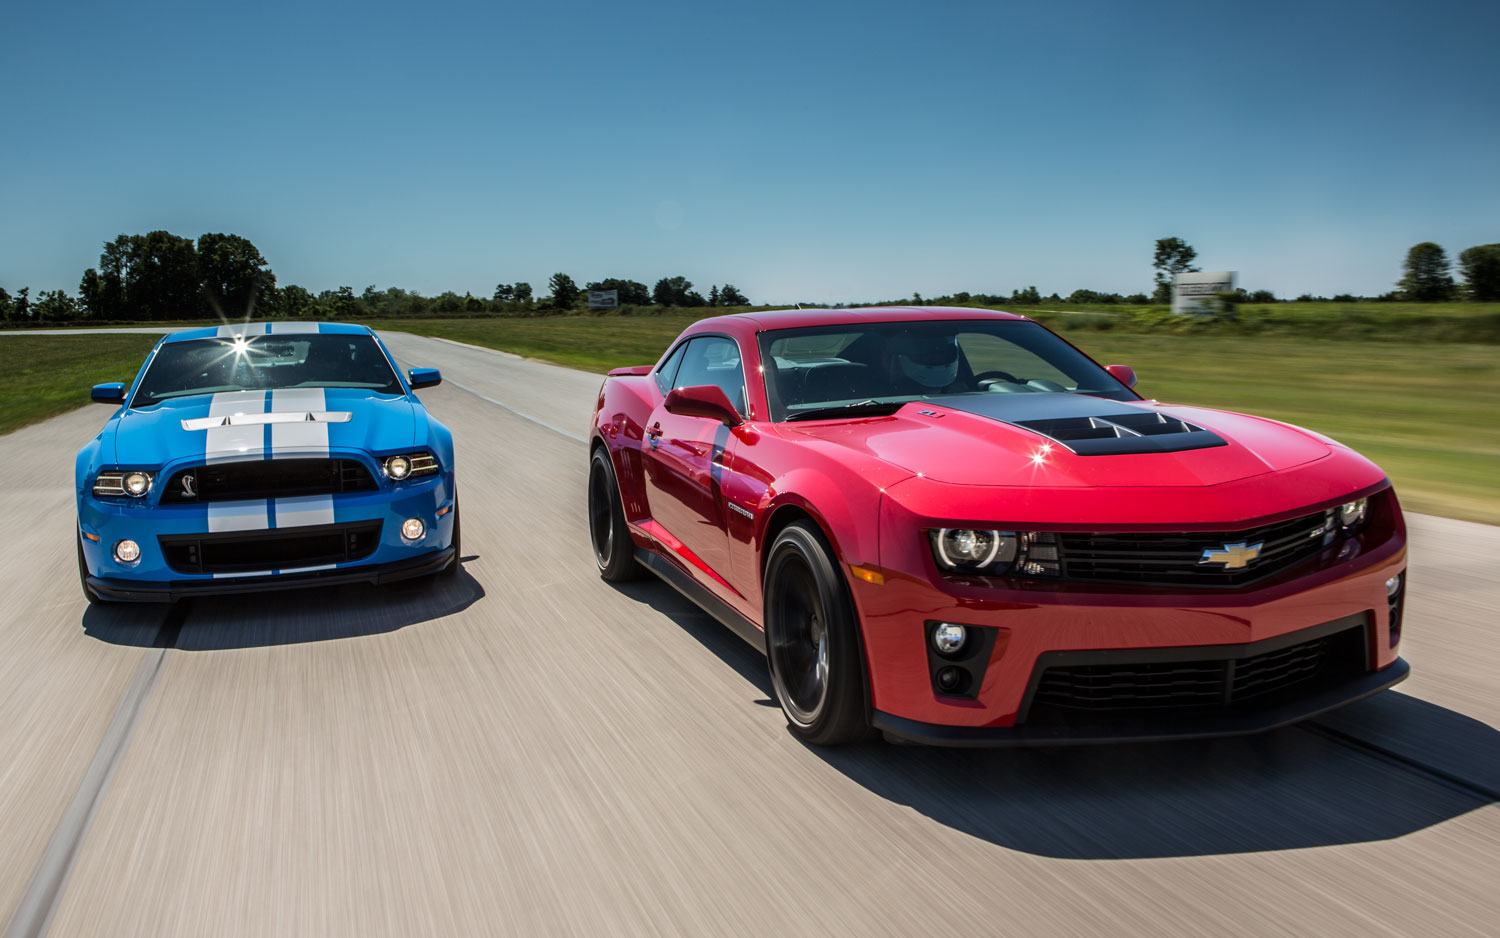 2012 Chevrolet Camaro ZL1 And 2013 Ford Shelby GT500 Front View On Track1